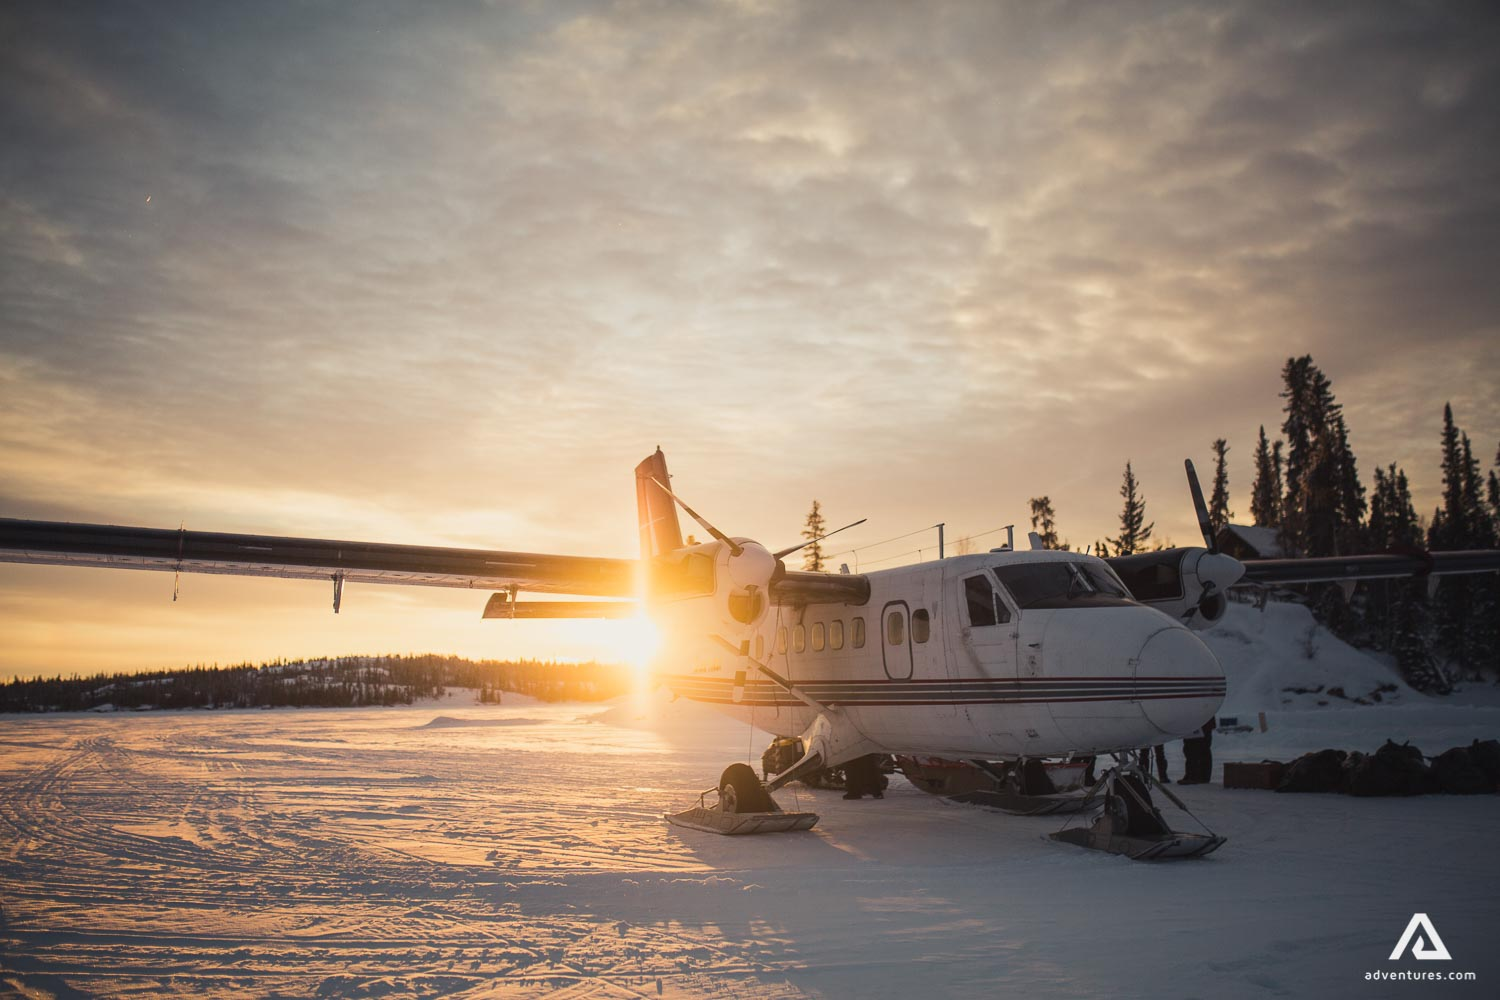 Airplane on the snowy ground